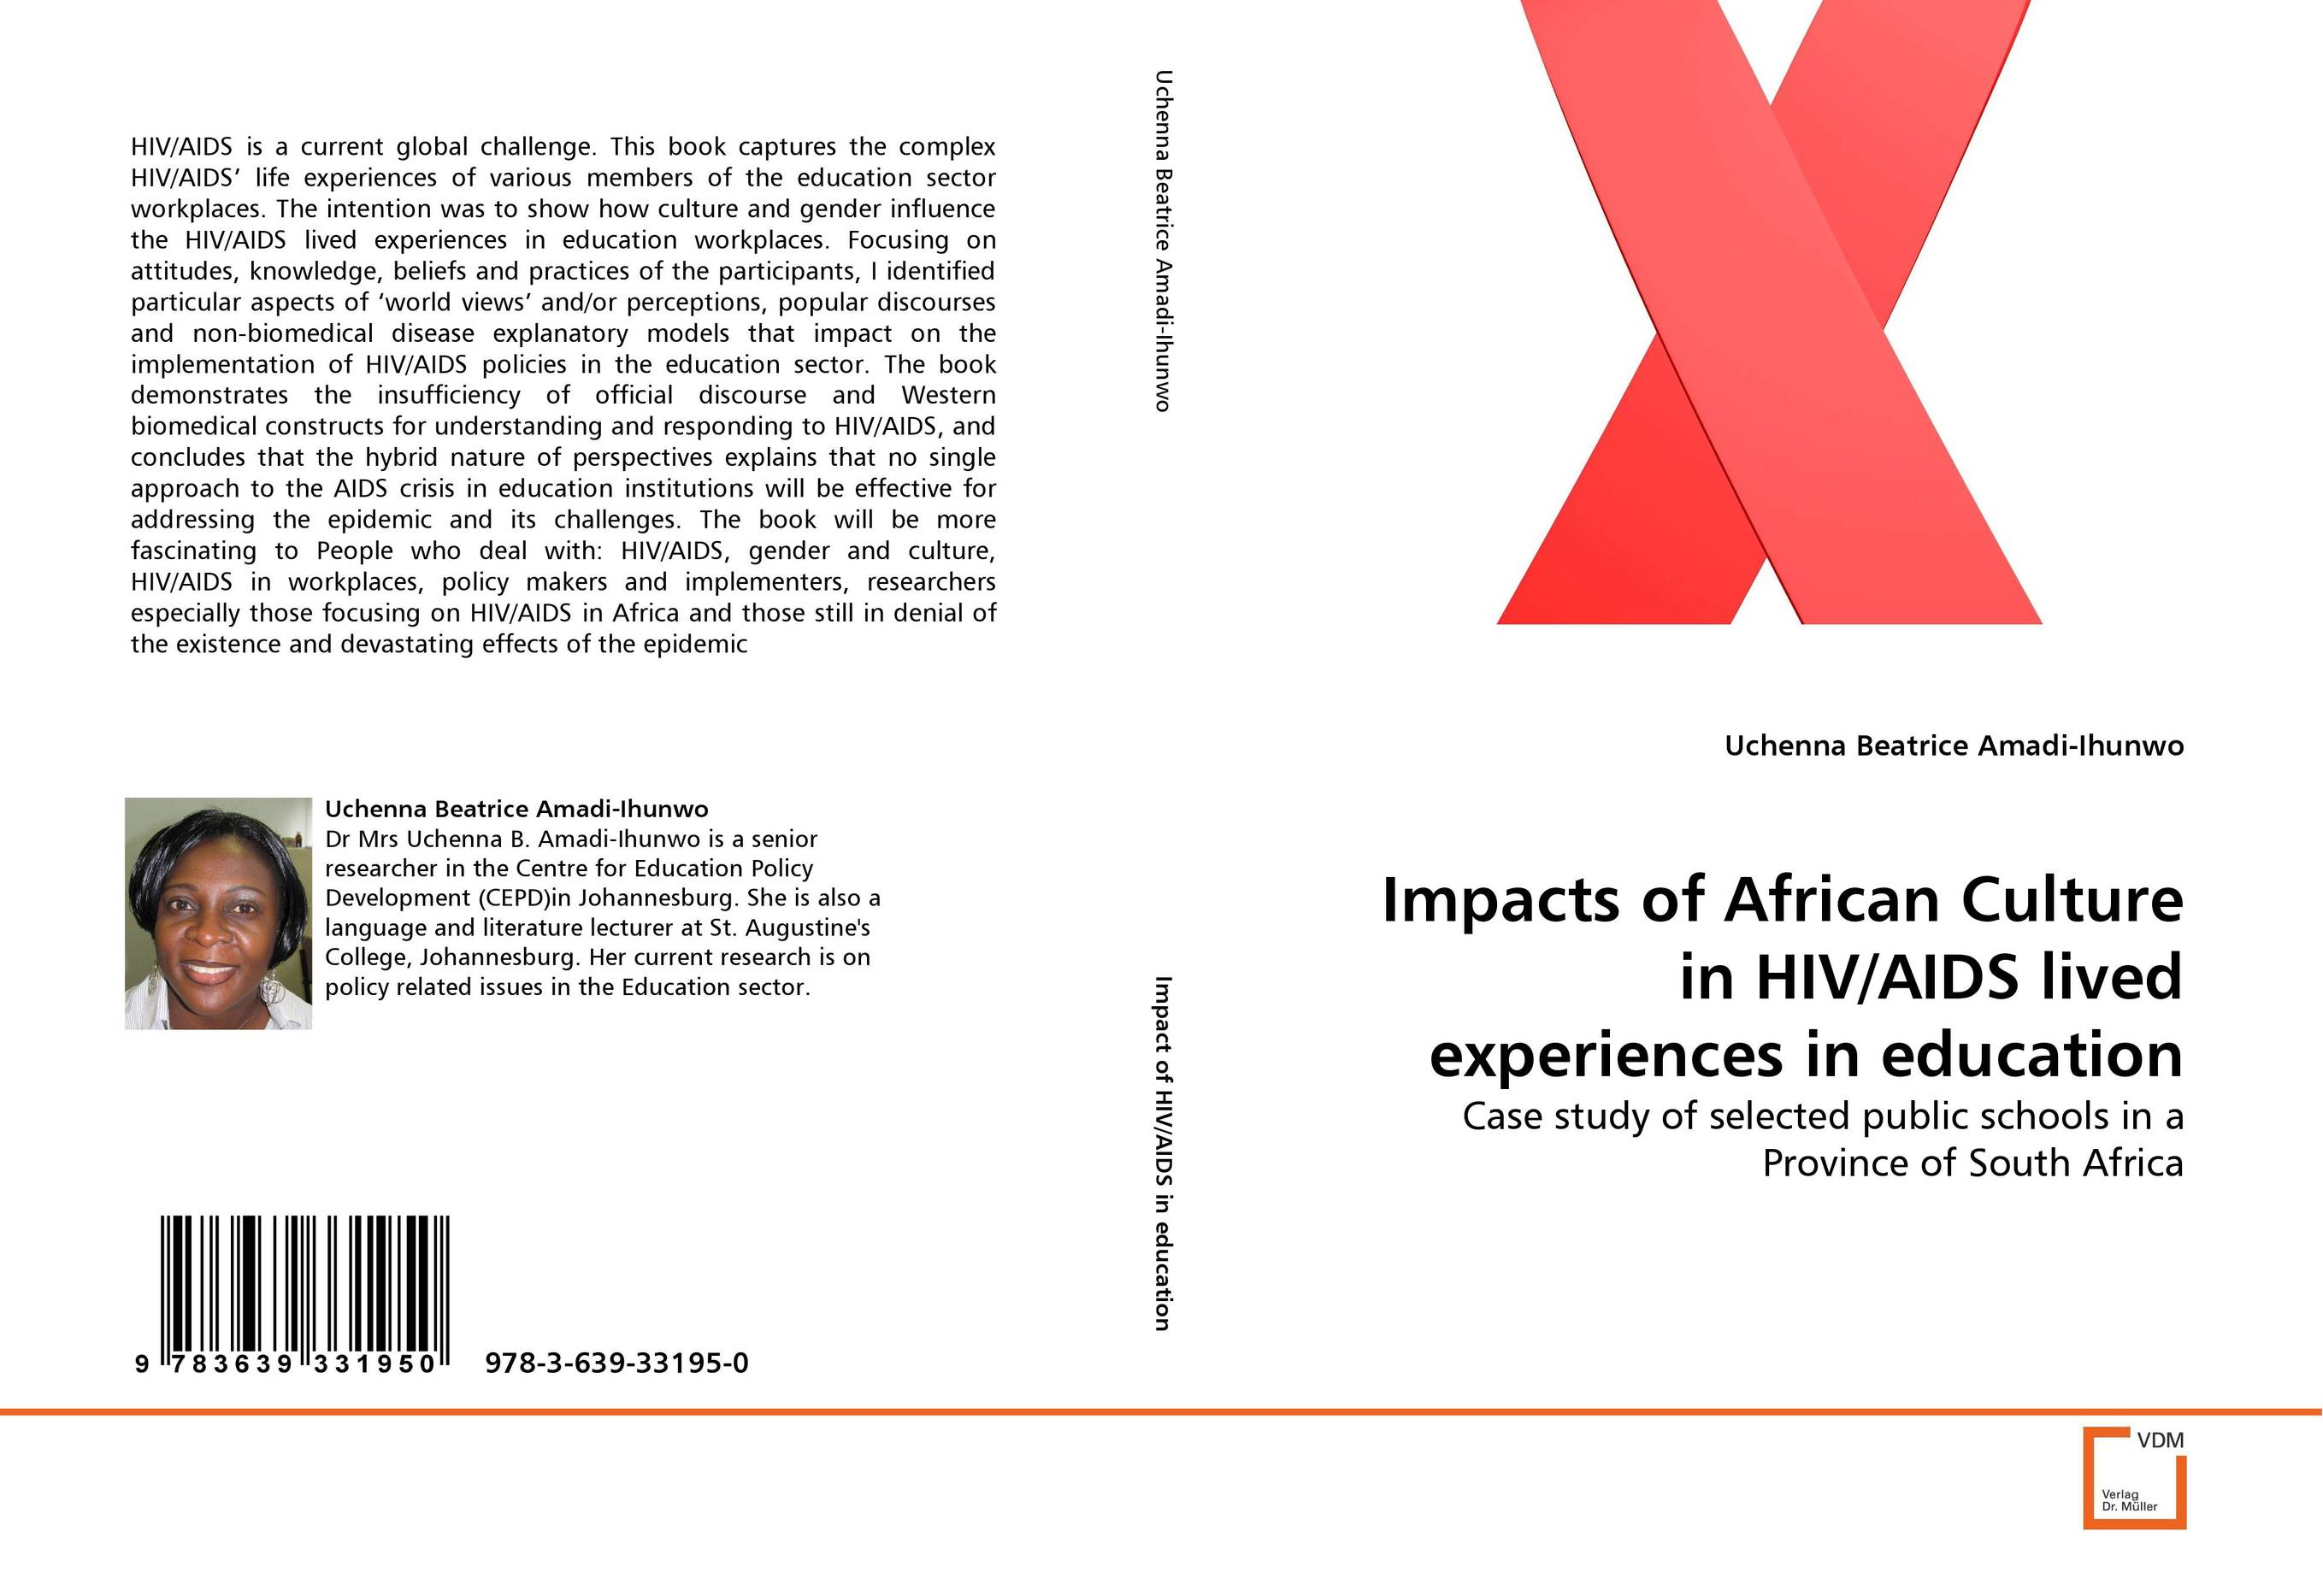 Impacts of African Culture in HIV/AIDS lived experiences in education hiv aids in manipur